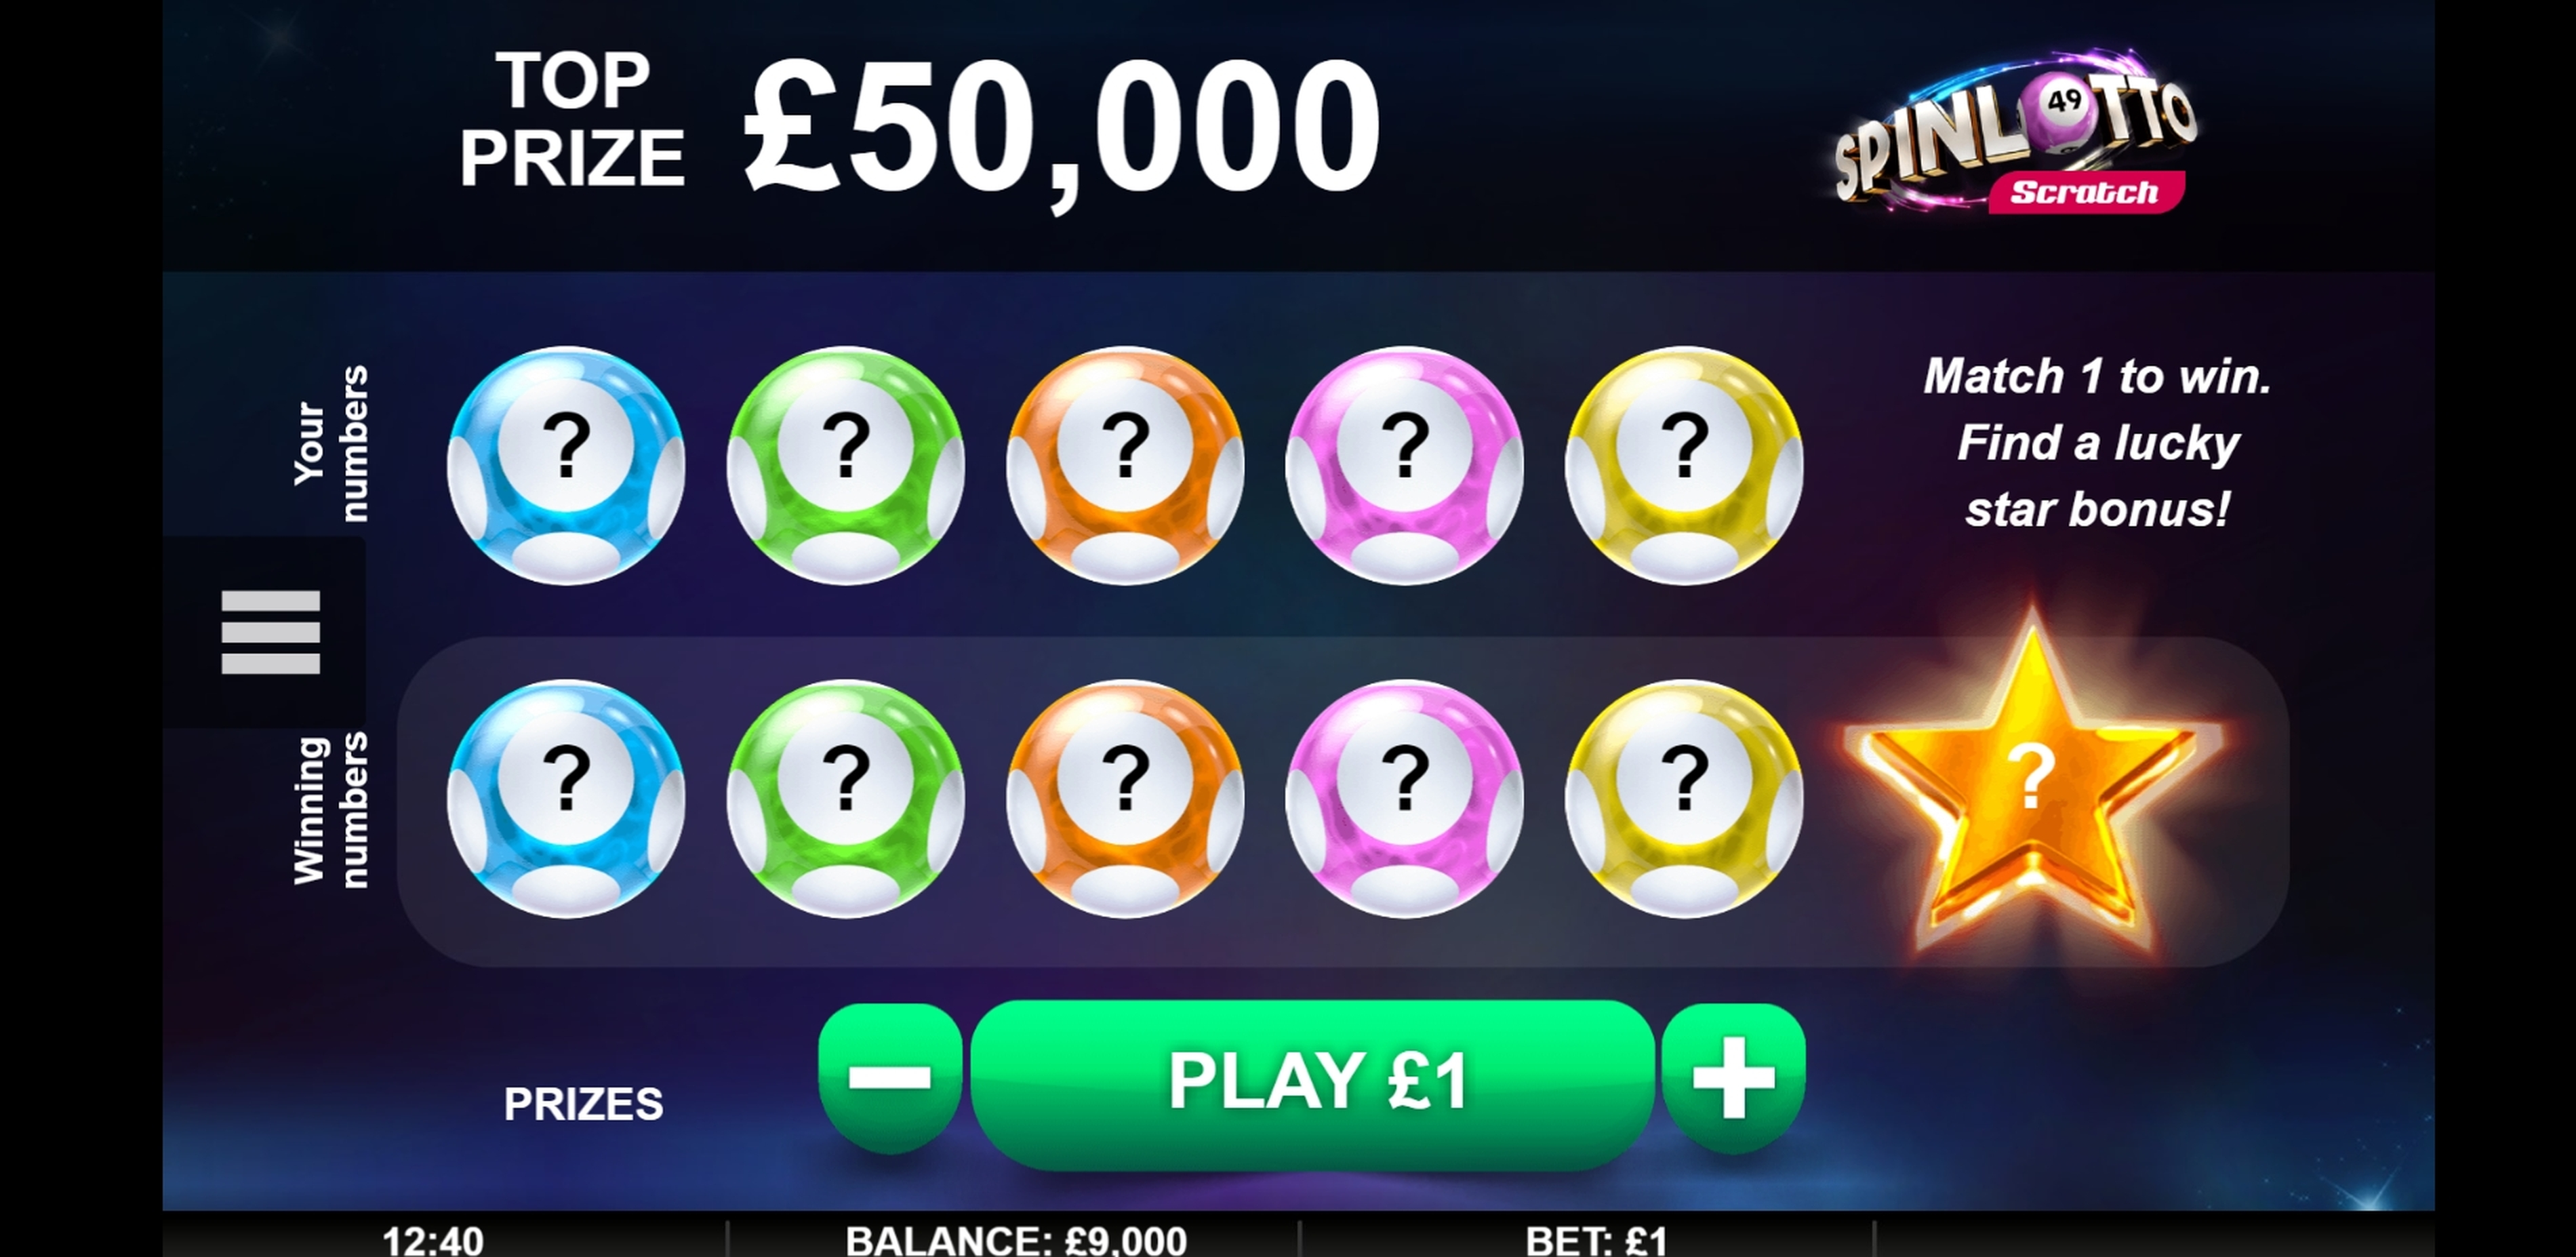 Reels in Spinlotto Scratch Slot Game by Gamevy